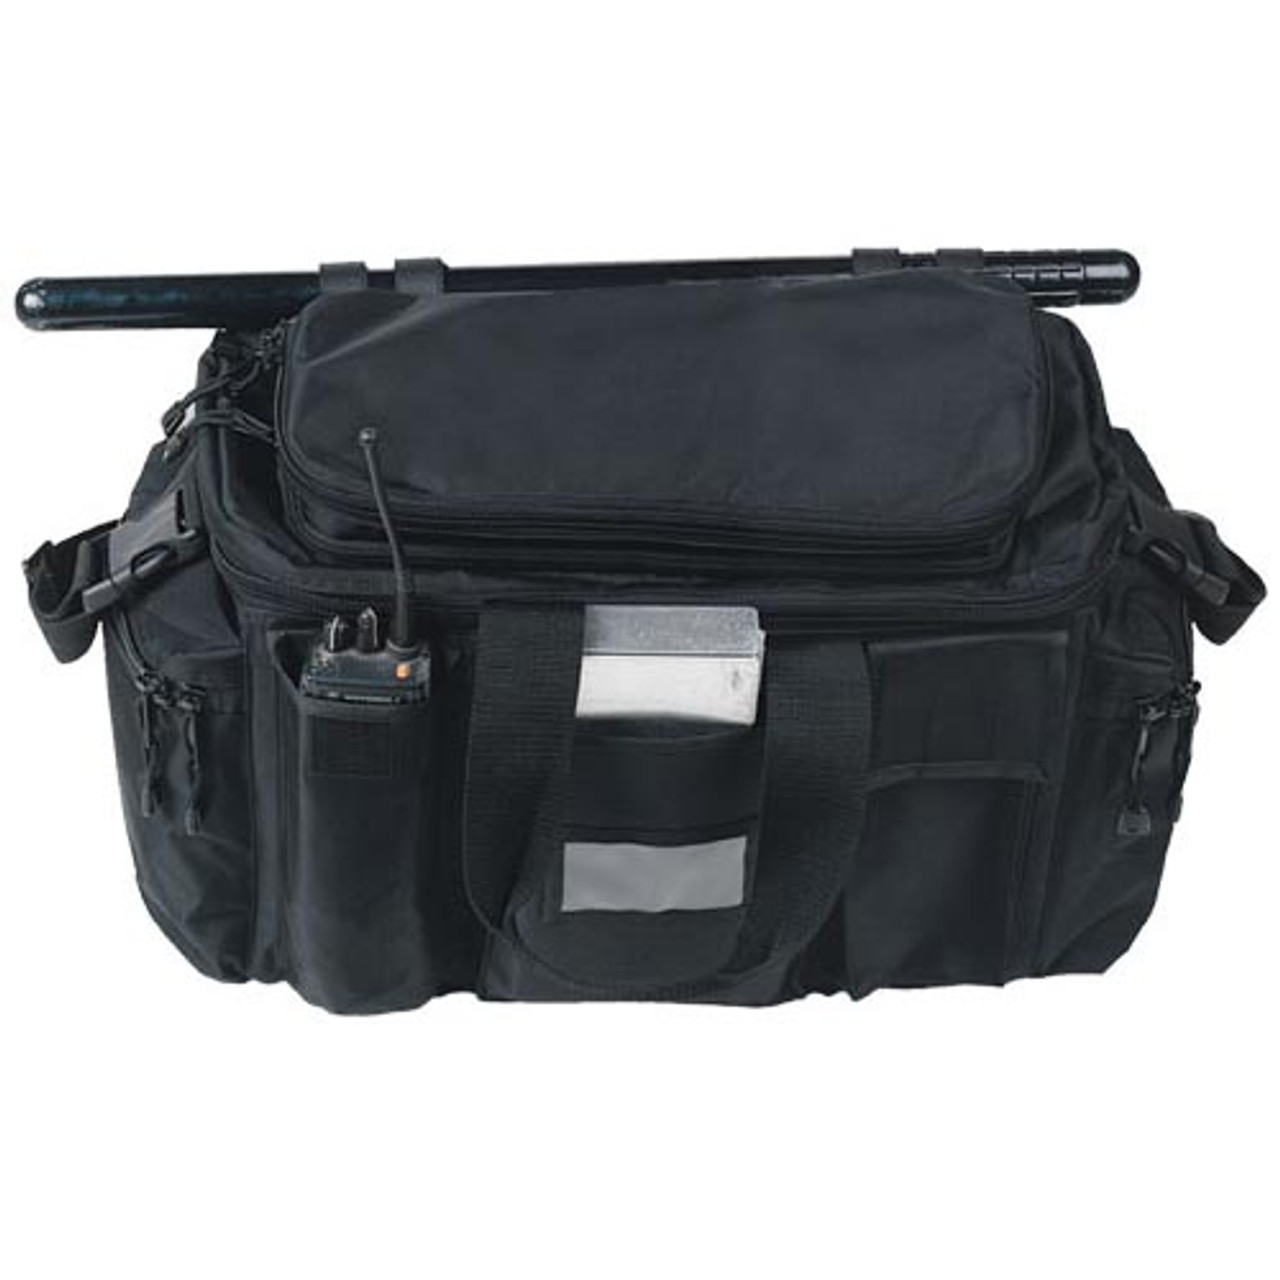 Deluxe Duty Gear Bag from Strong Leather